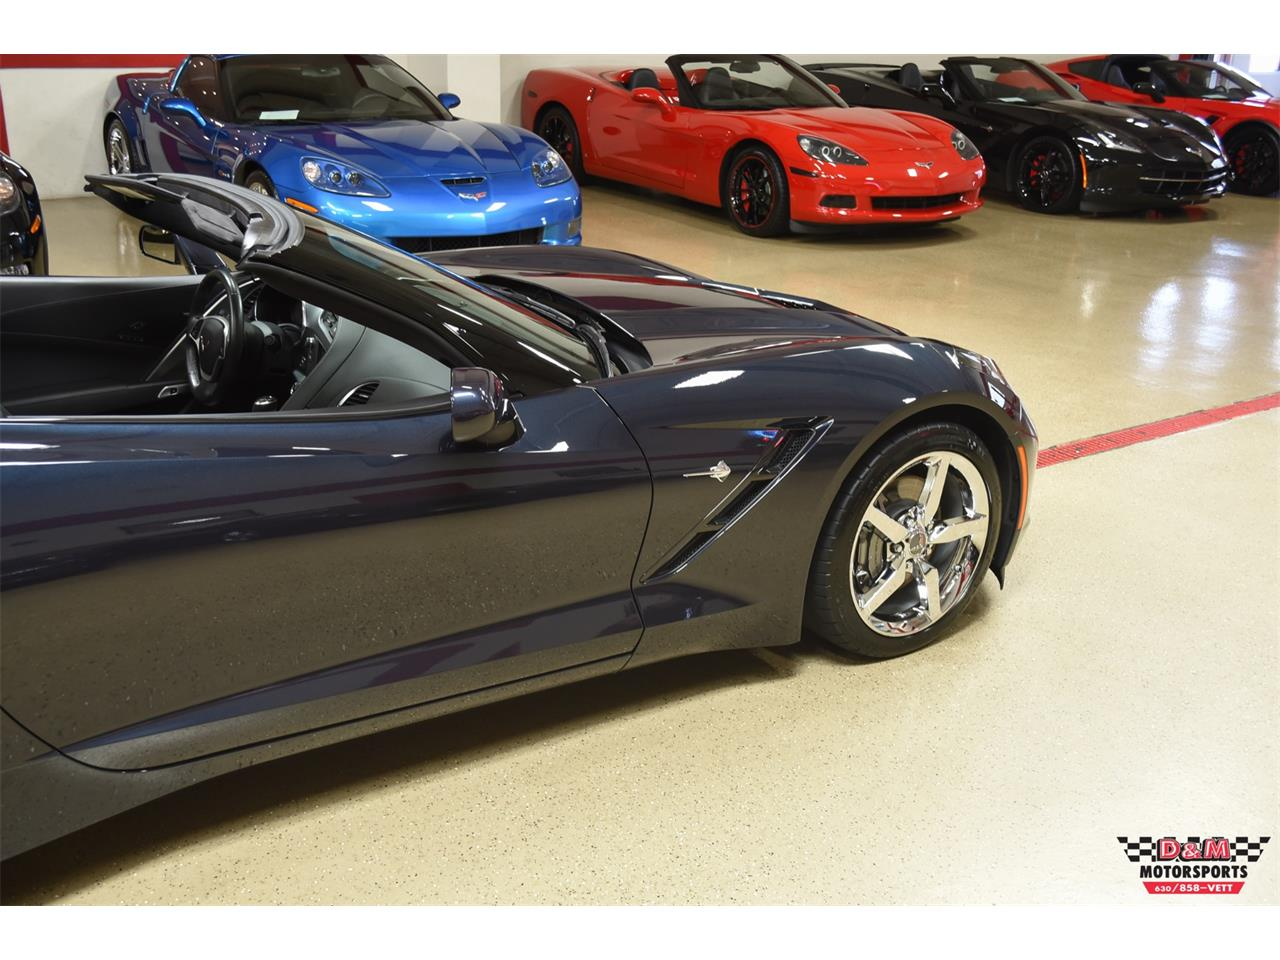 Large Picture of '15 Corvette located in Illinois Offered by D & M Motorsports - QGAK